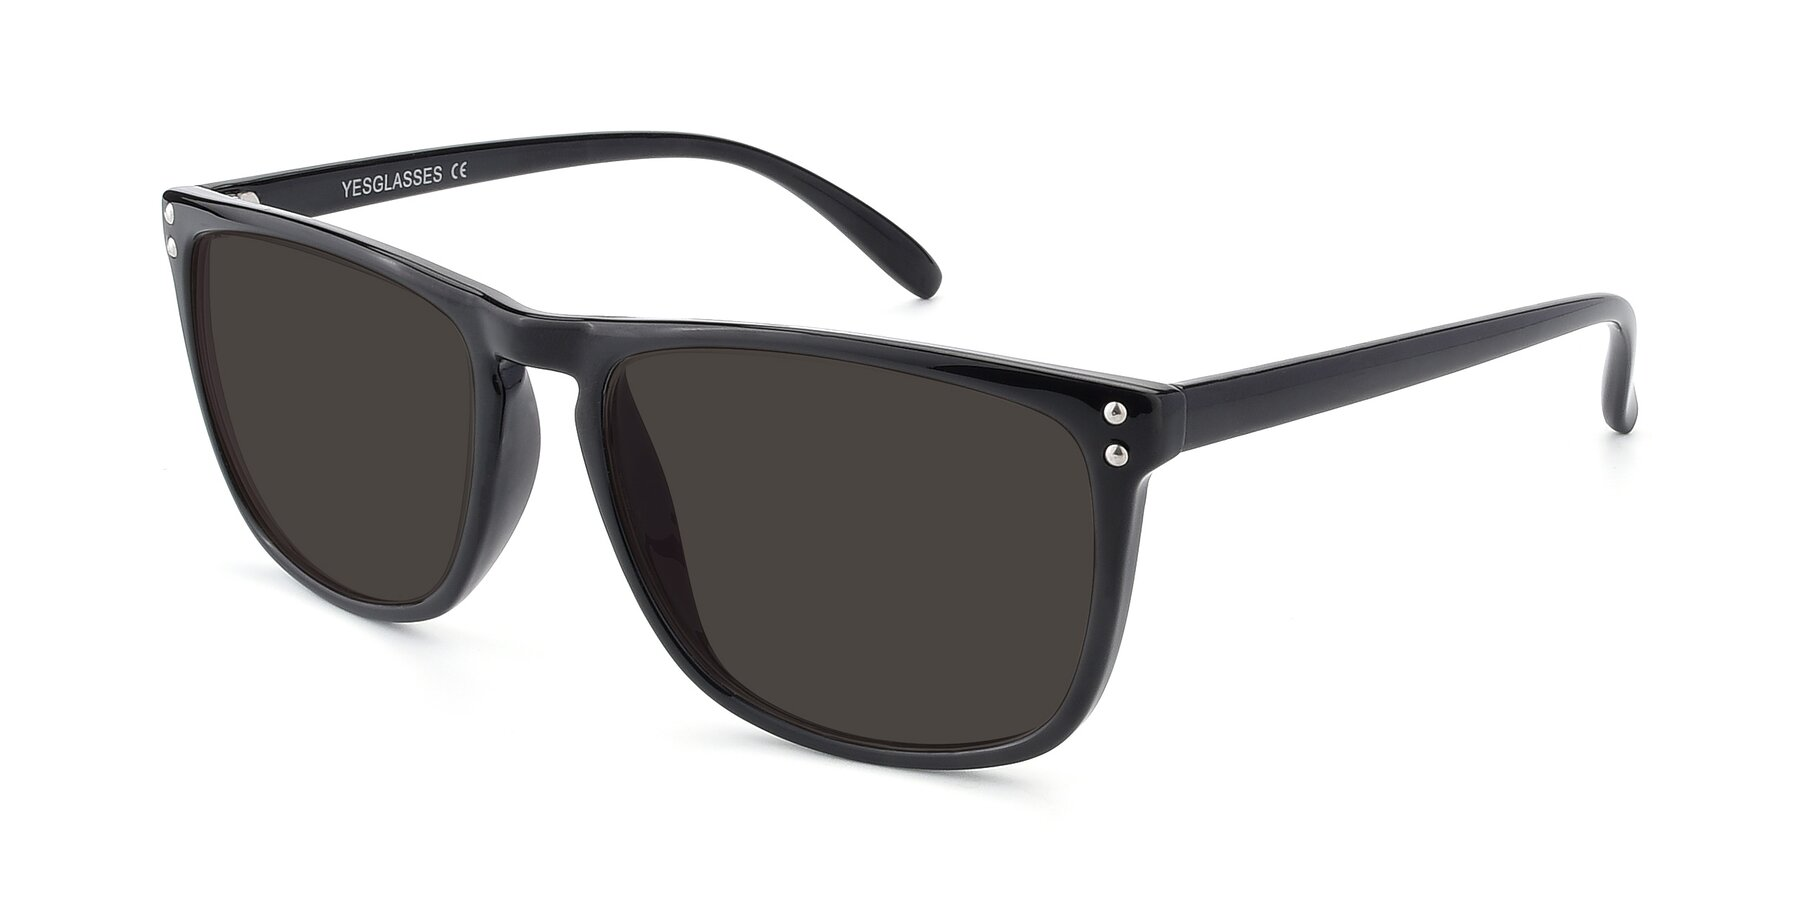 Angle of SSR411 in Black with Gray Tinted Lenses